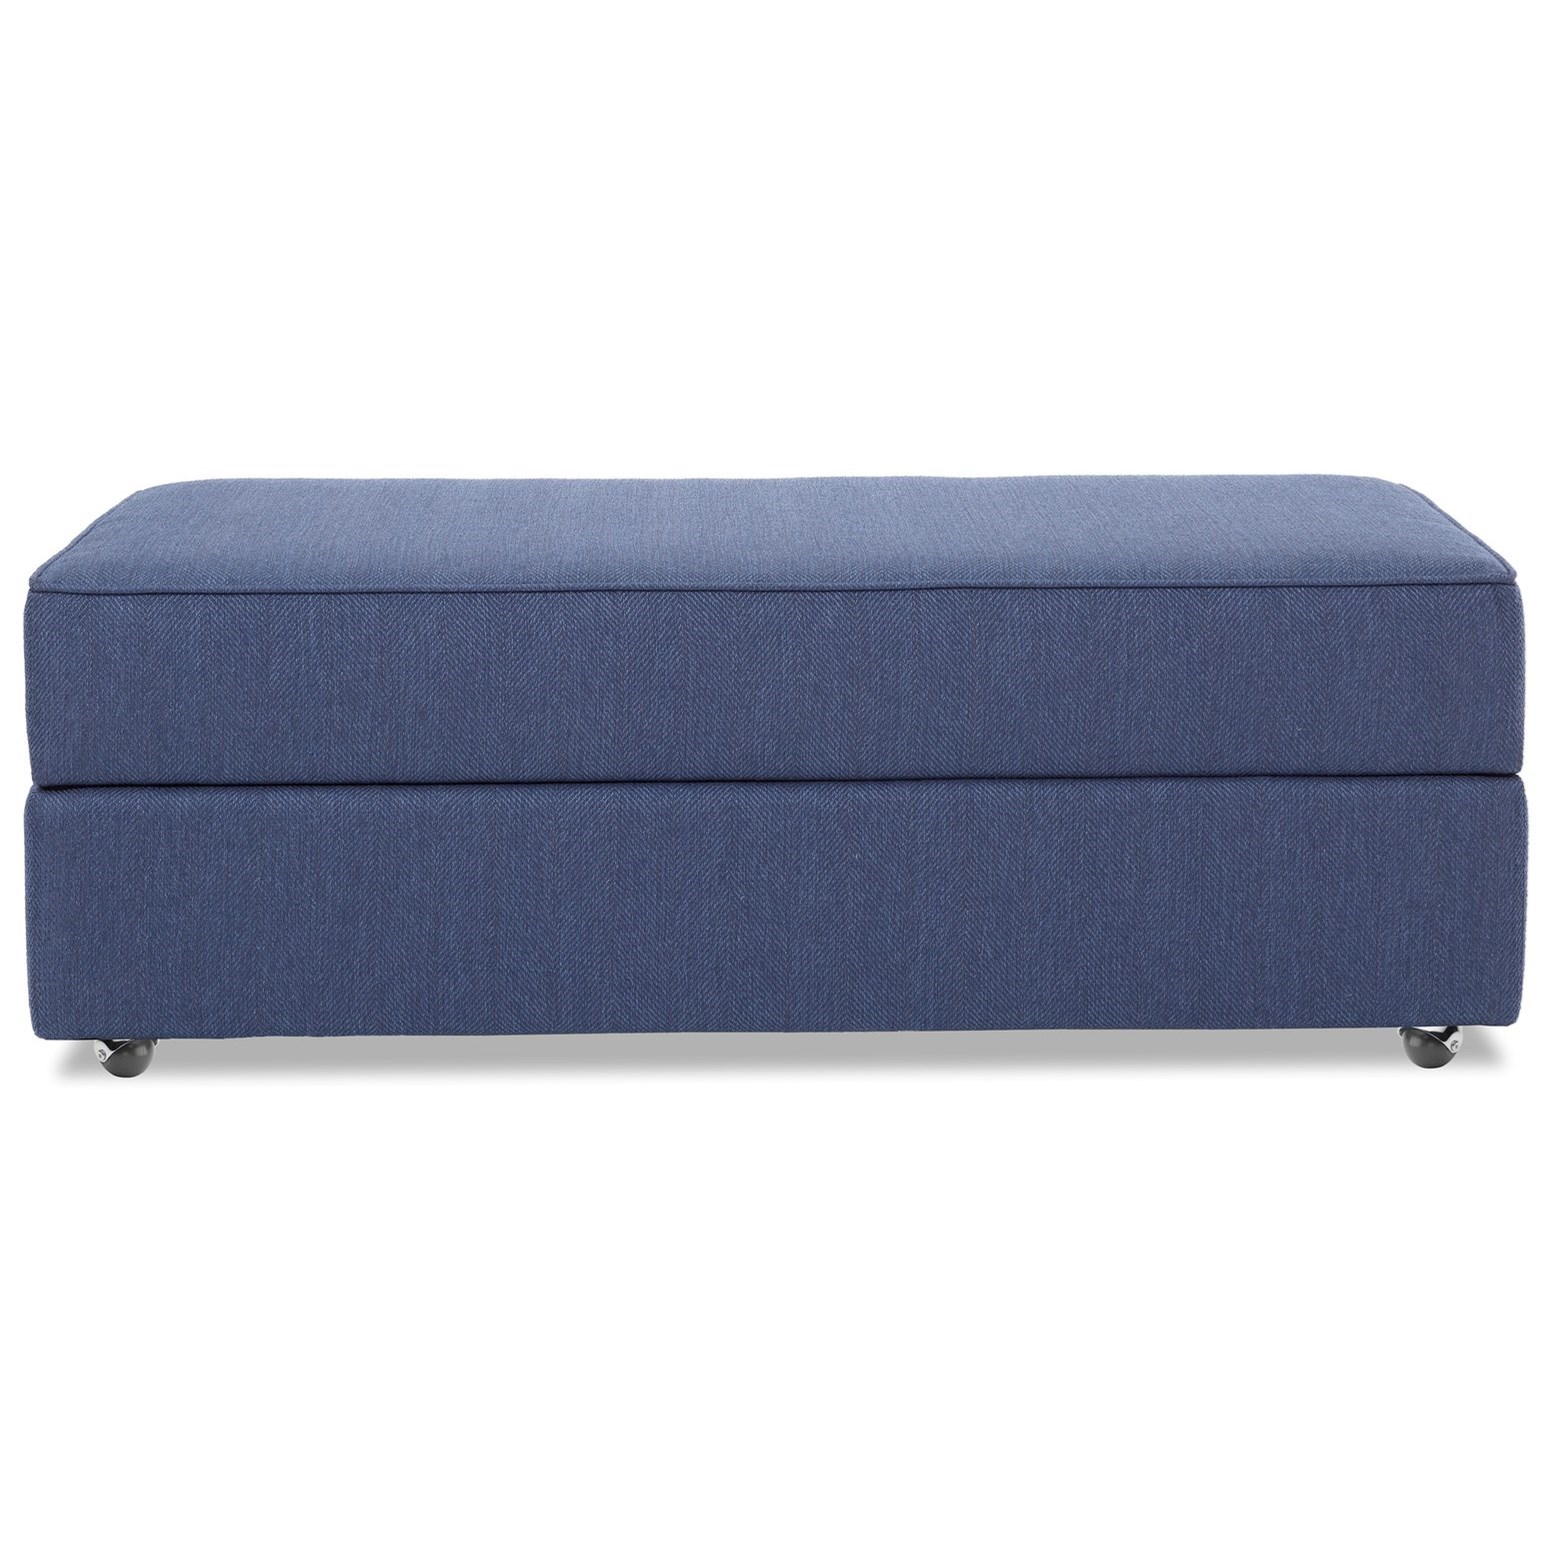 2285 Storage Ottoman by Decor-Rest at Rooms for Less